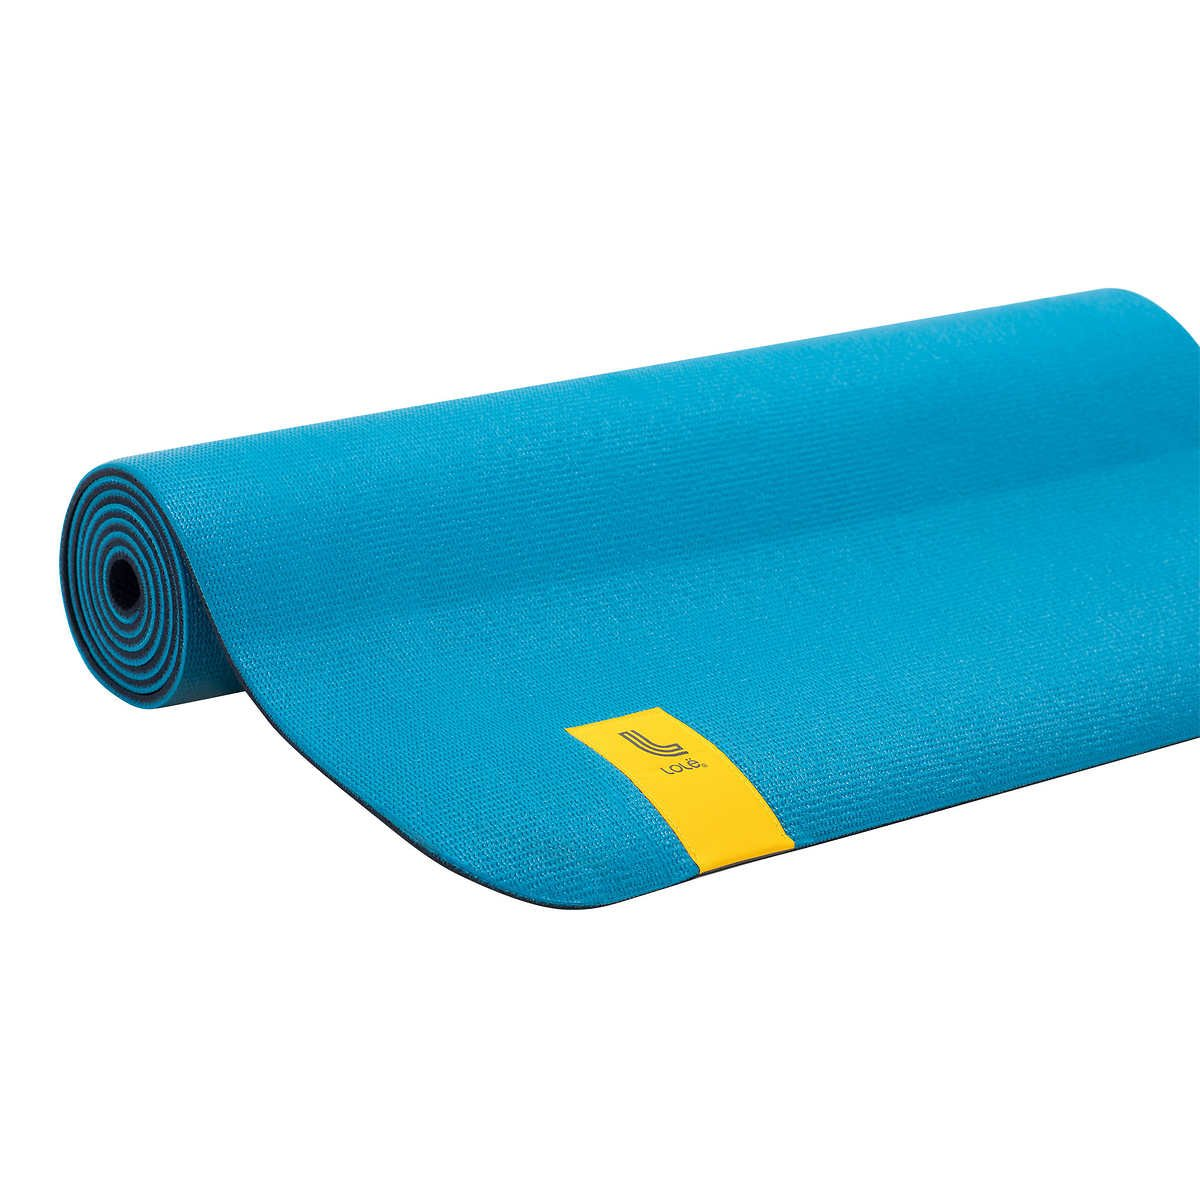 Amazon.com: Lole Correa de Yoga y Mat Azul: Home & Kitchen